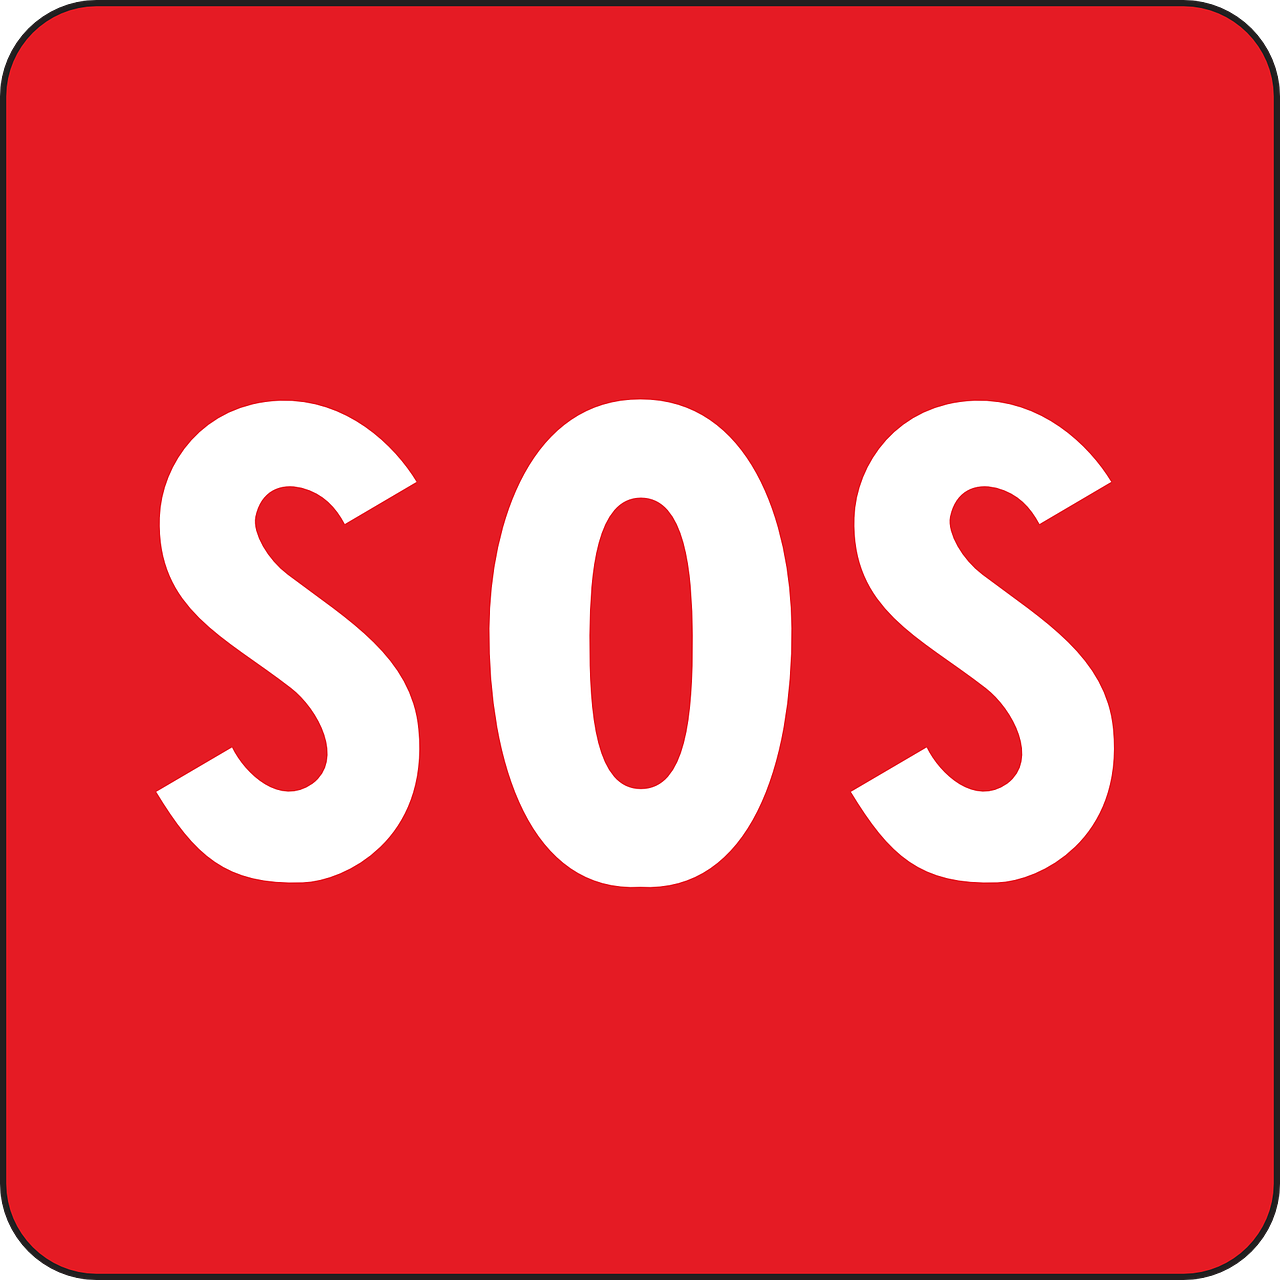 image of SOS / help